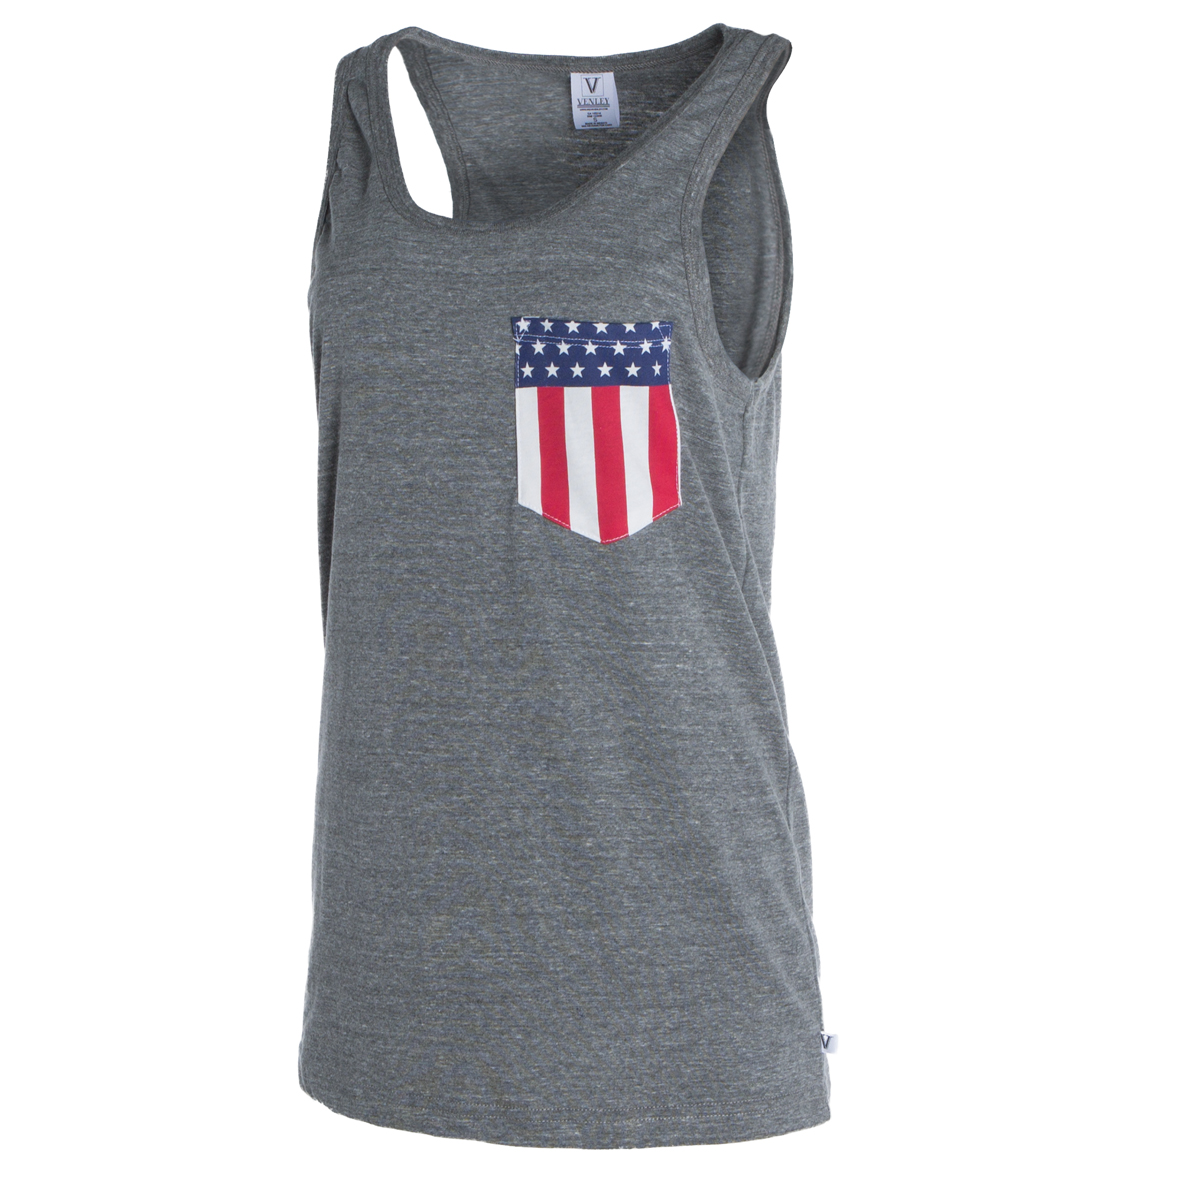 Cover Image For Venley: Arizona  Women's Tyger Americana Pocket Tank-Grey